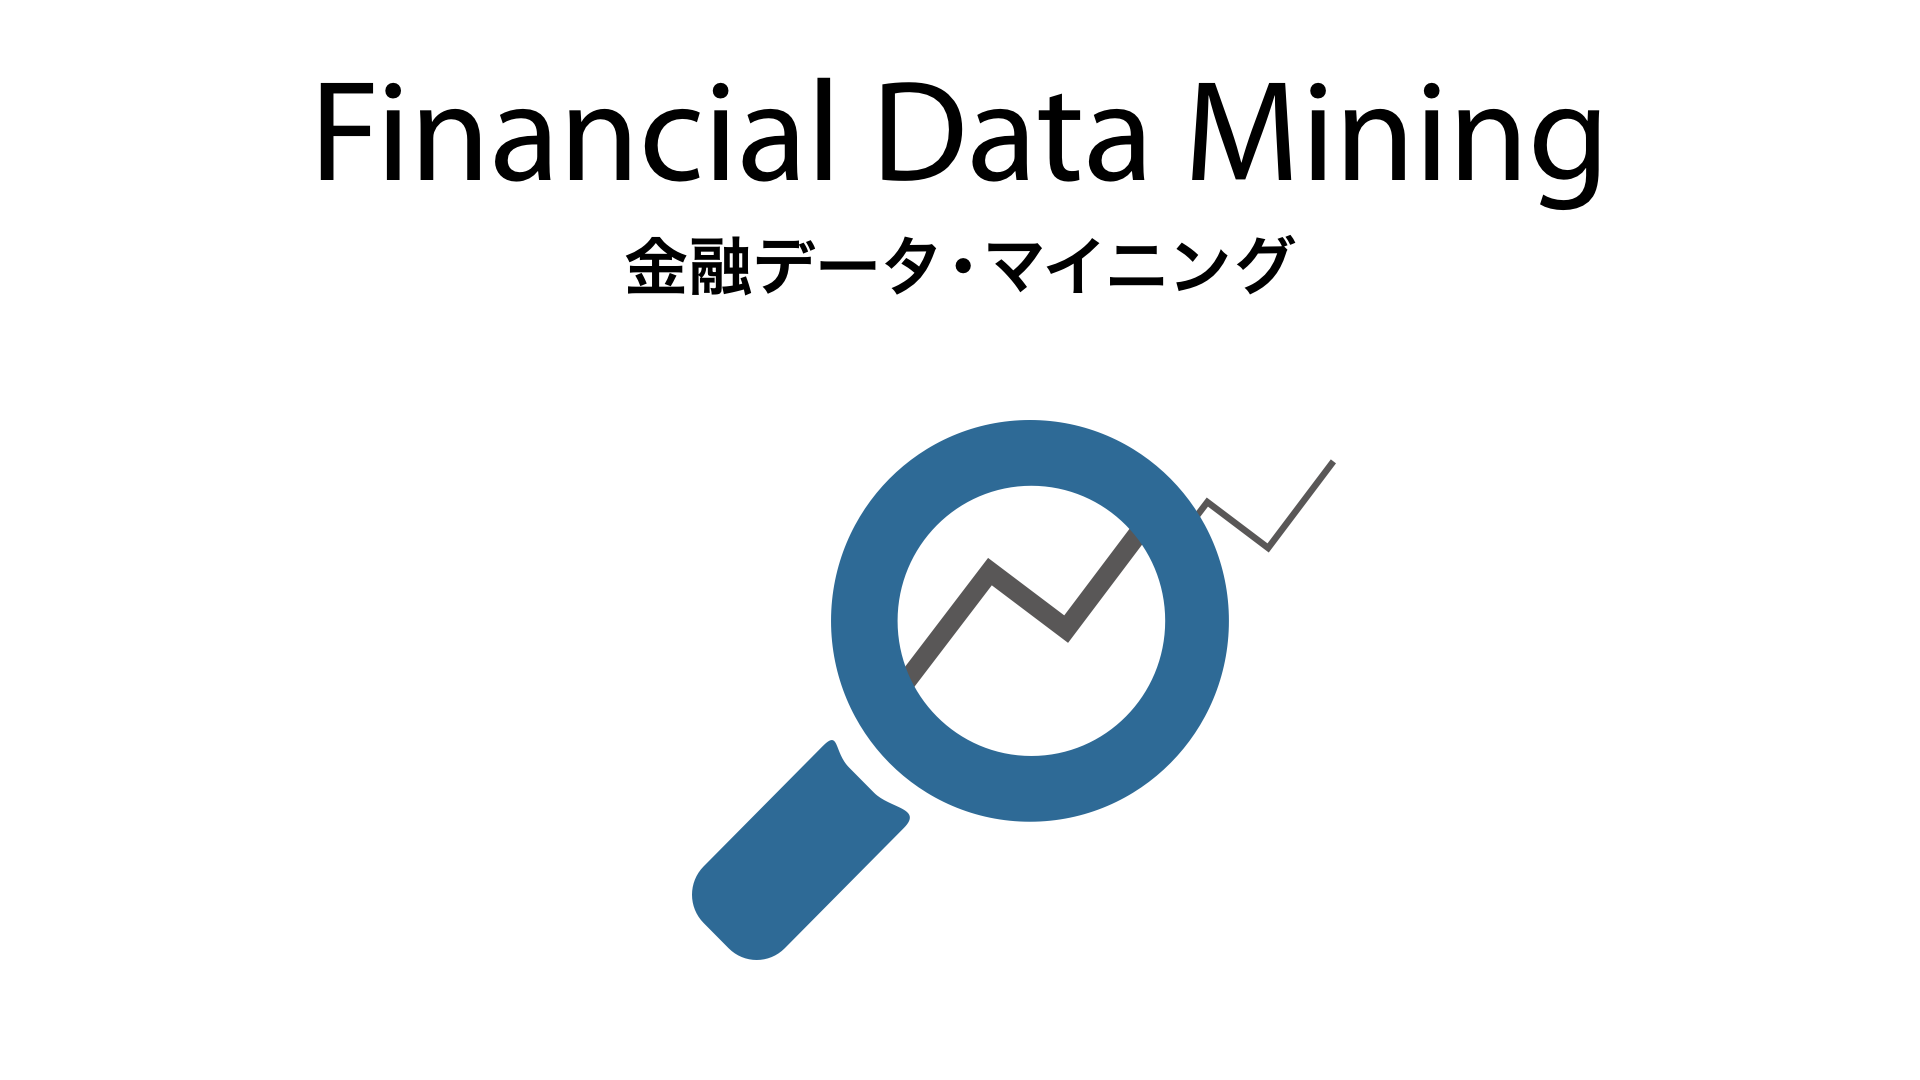 financial_data_mining.png